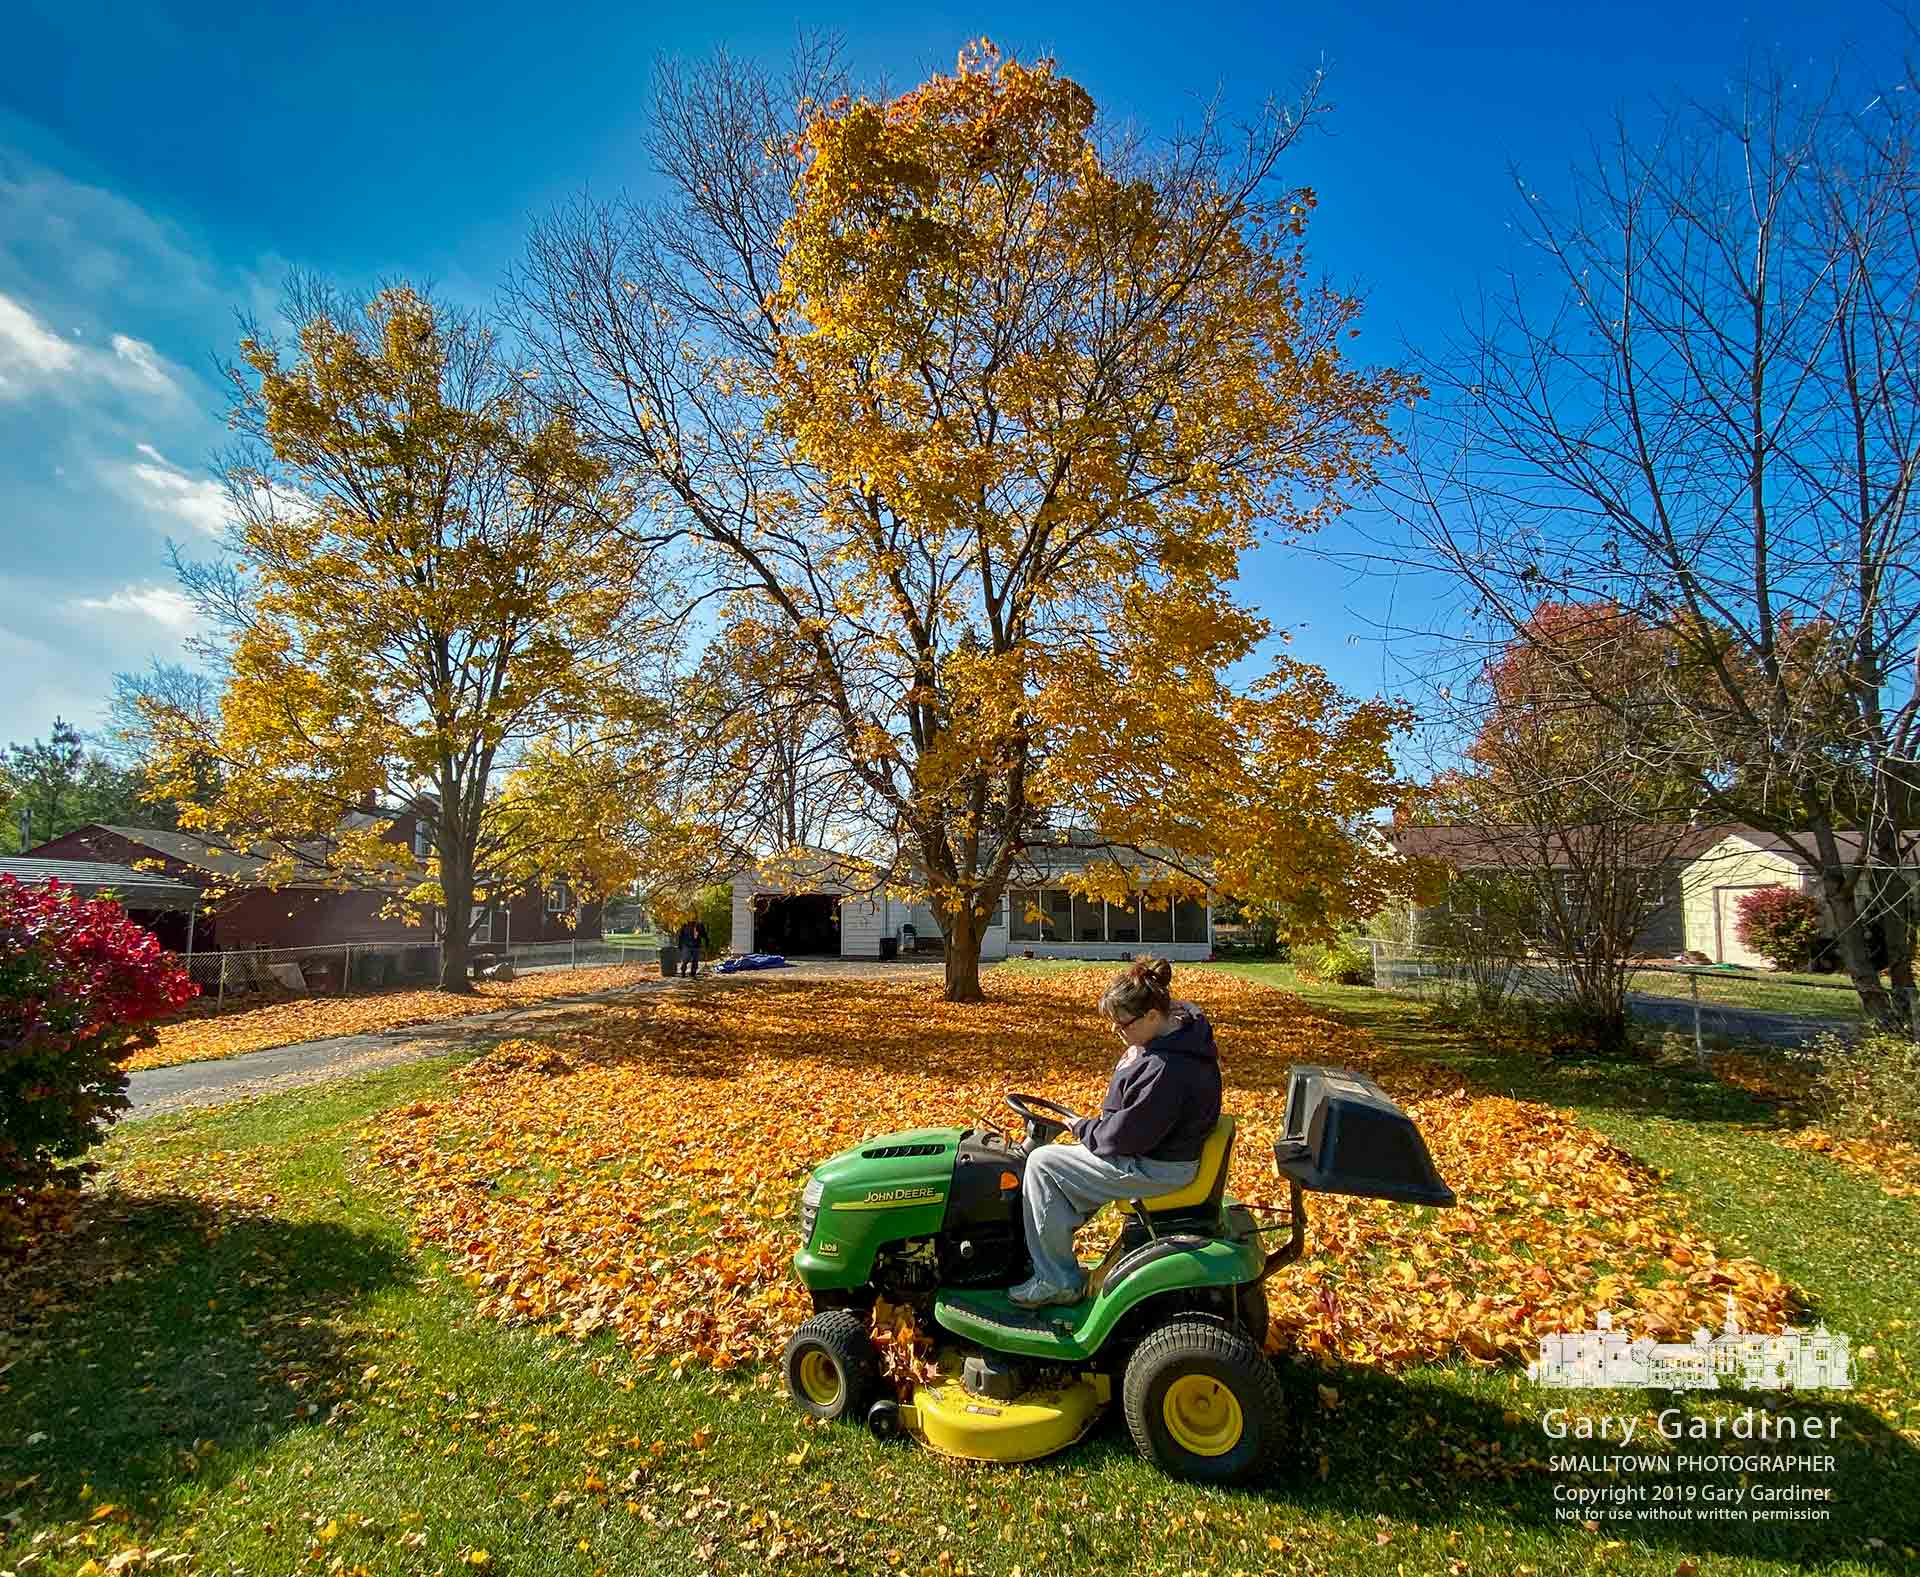 A homeowner uses her newly purchased John Deere mower to move leaves into a tighter circle before raking them into a large tarpaulin and taking them to the curb. My Final Photo for Nov. 1, 2019.